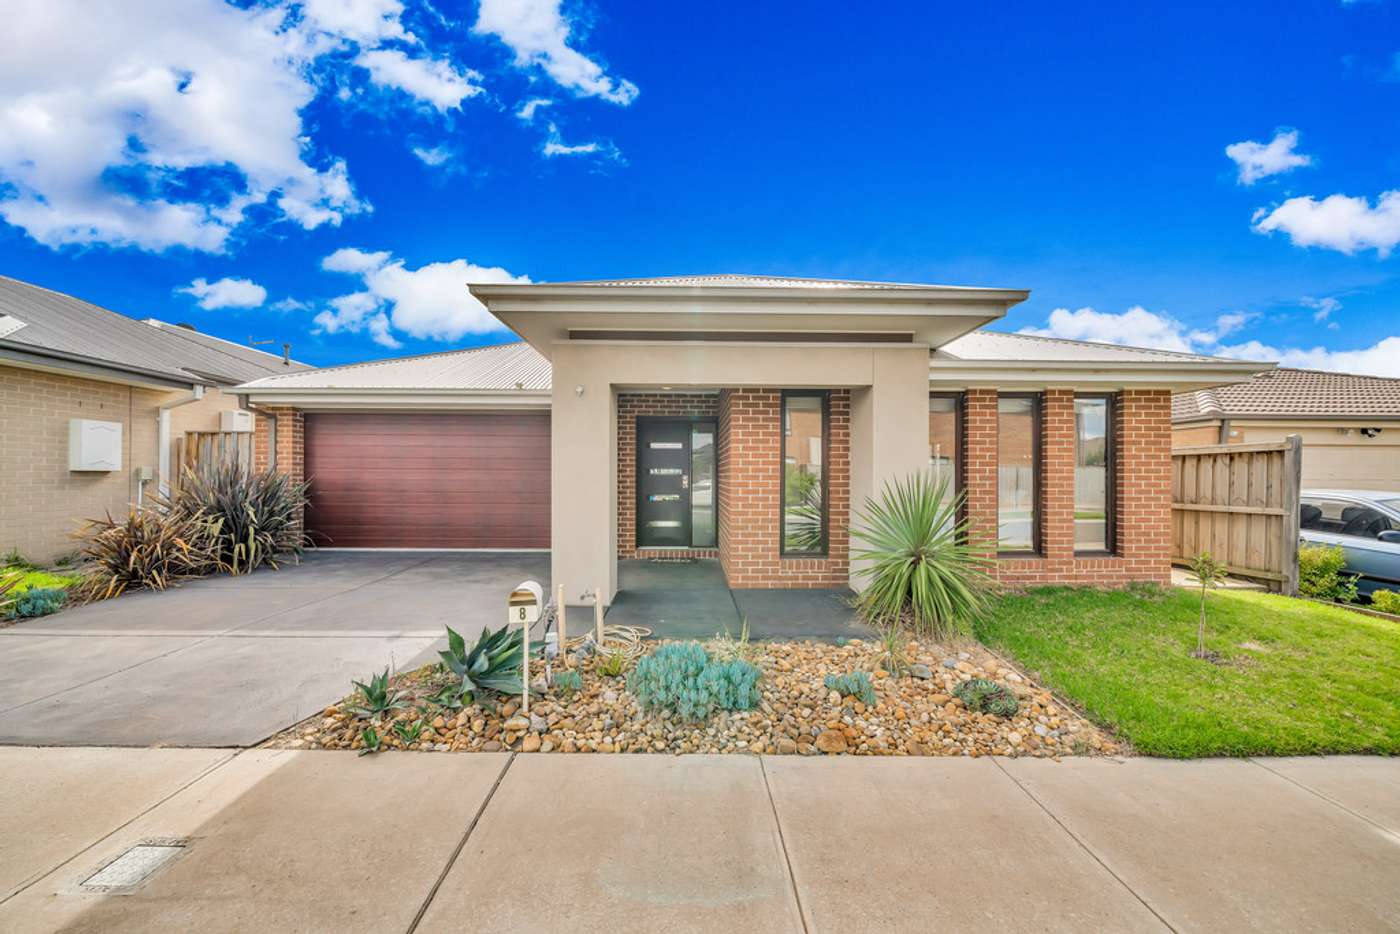 Main view of Homely house listing, 8 Mahal Dr, Clyde North VIC 3978